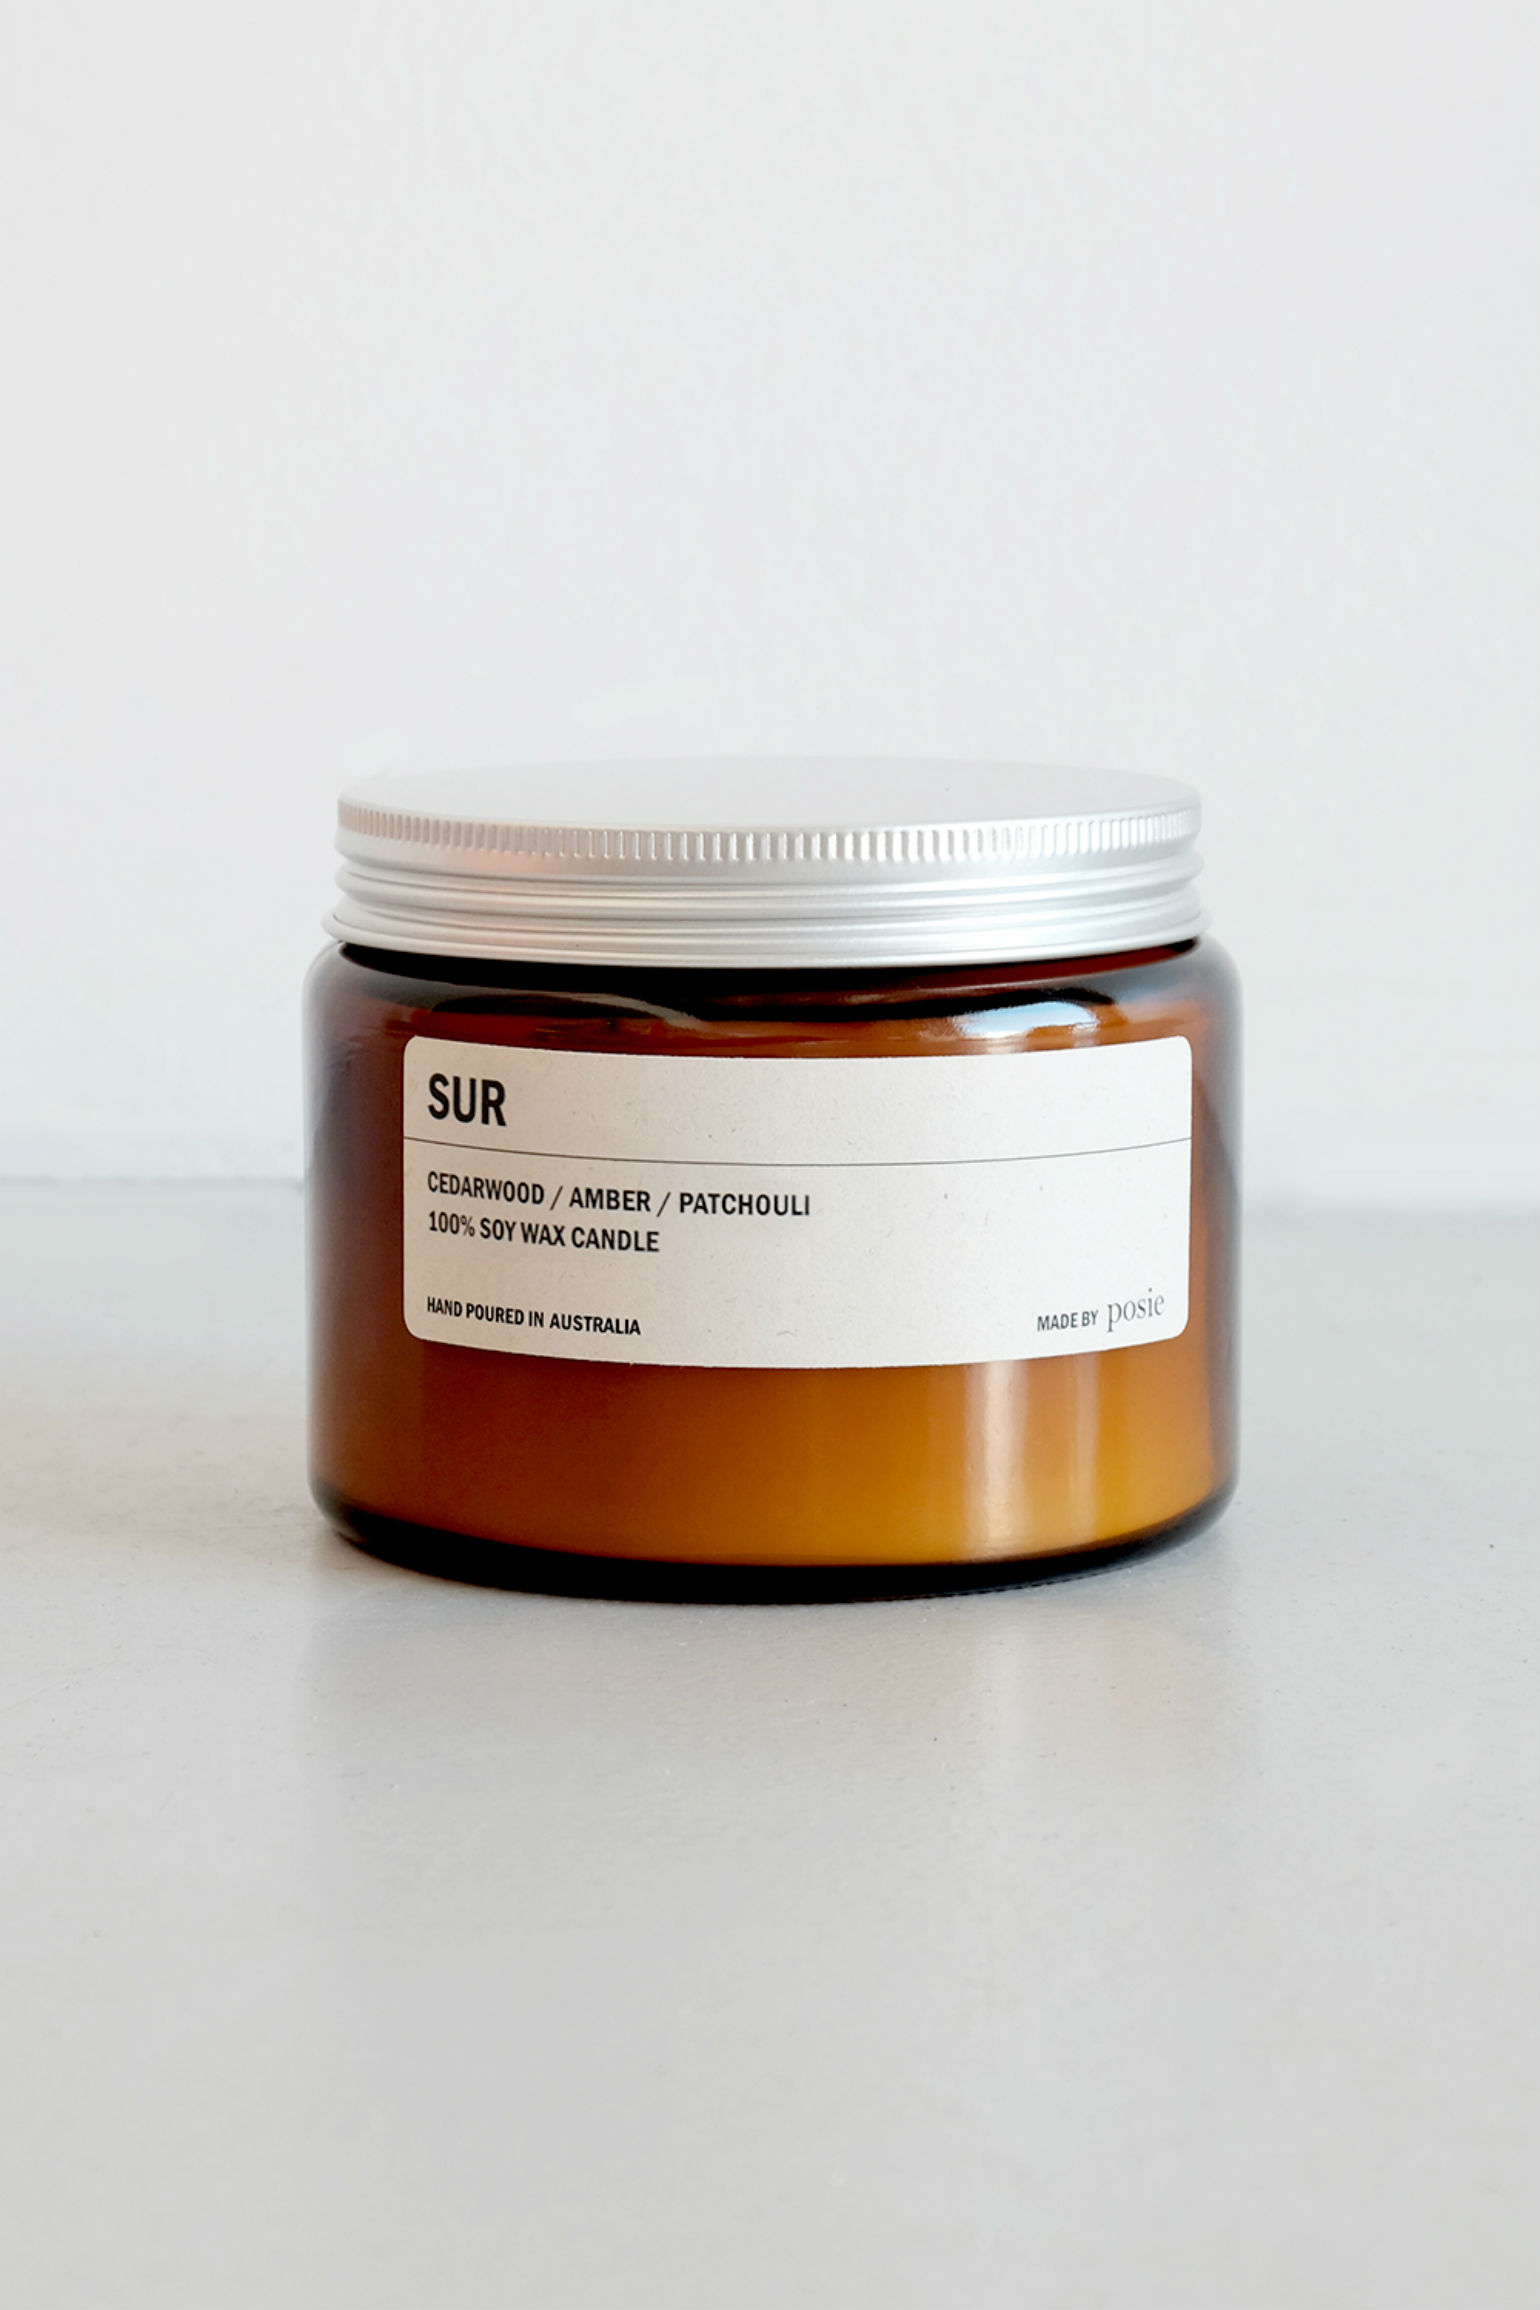 We are Posie 500g Amber Jar Soy Candle SUR